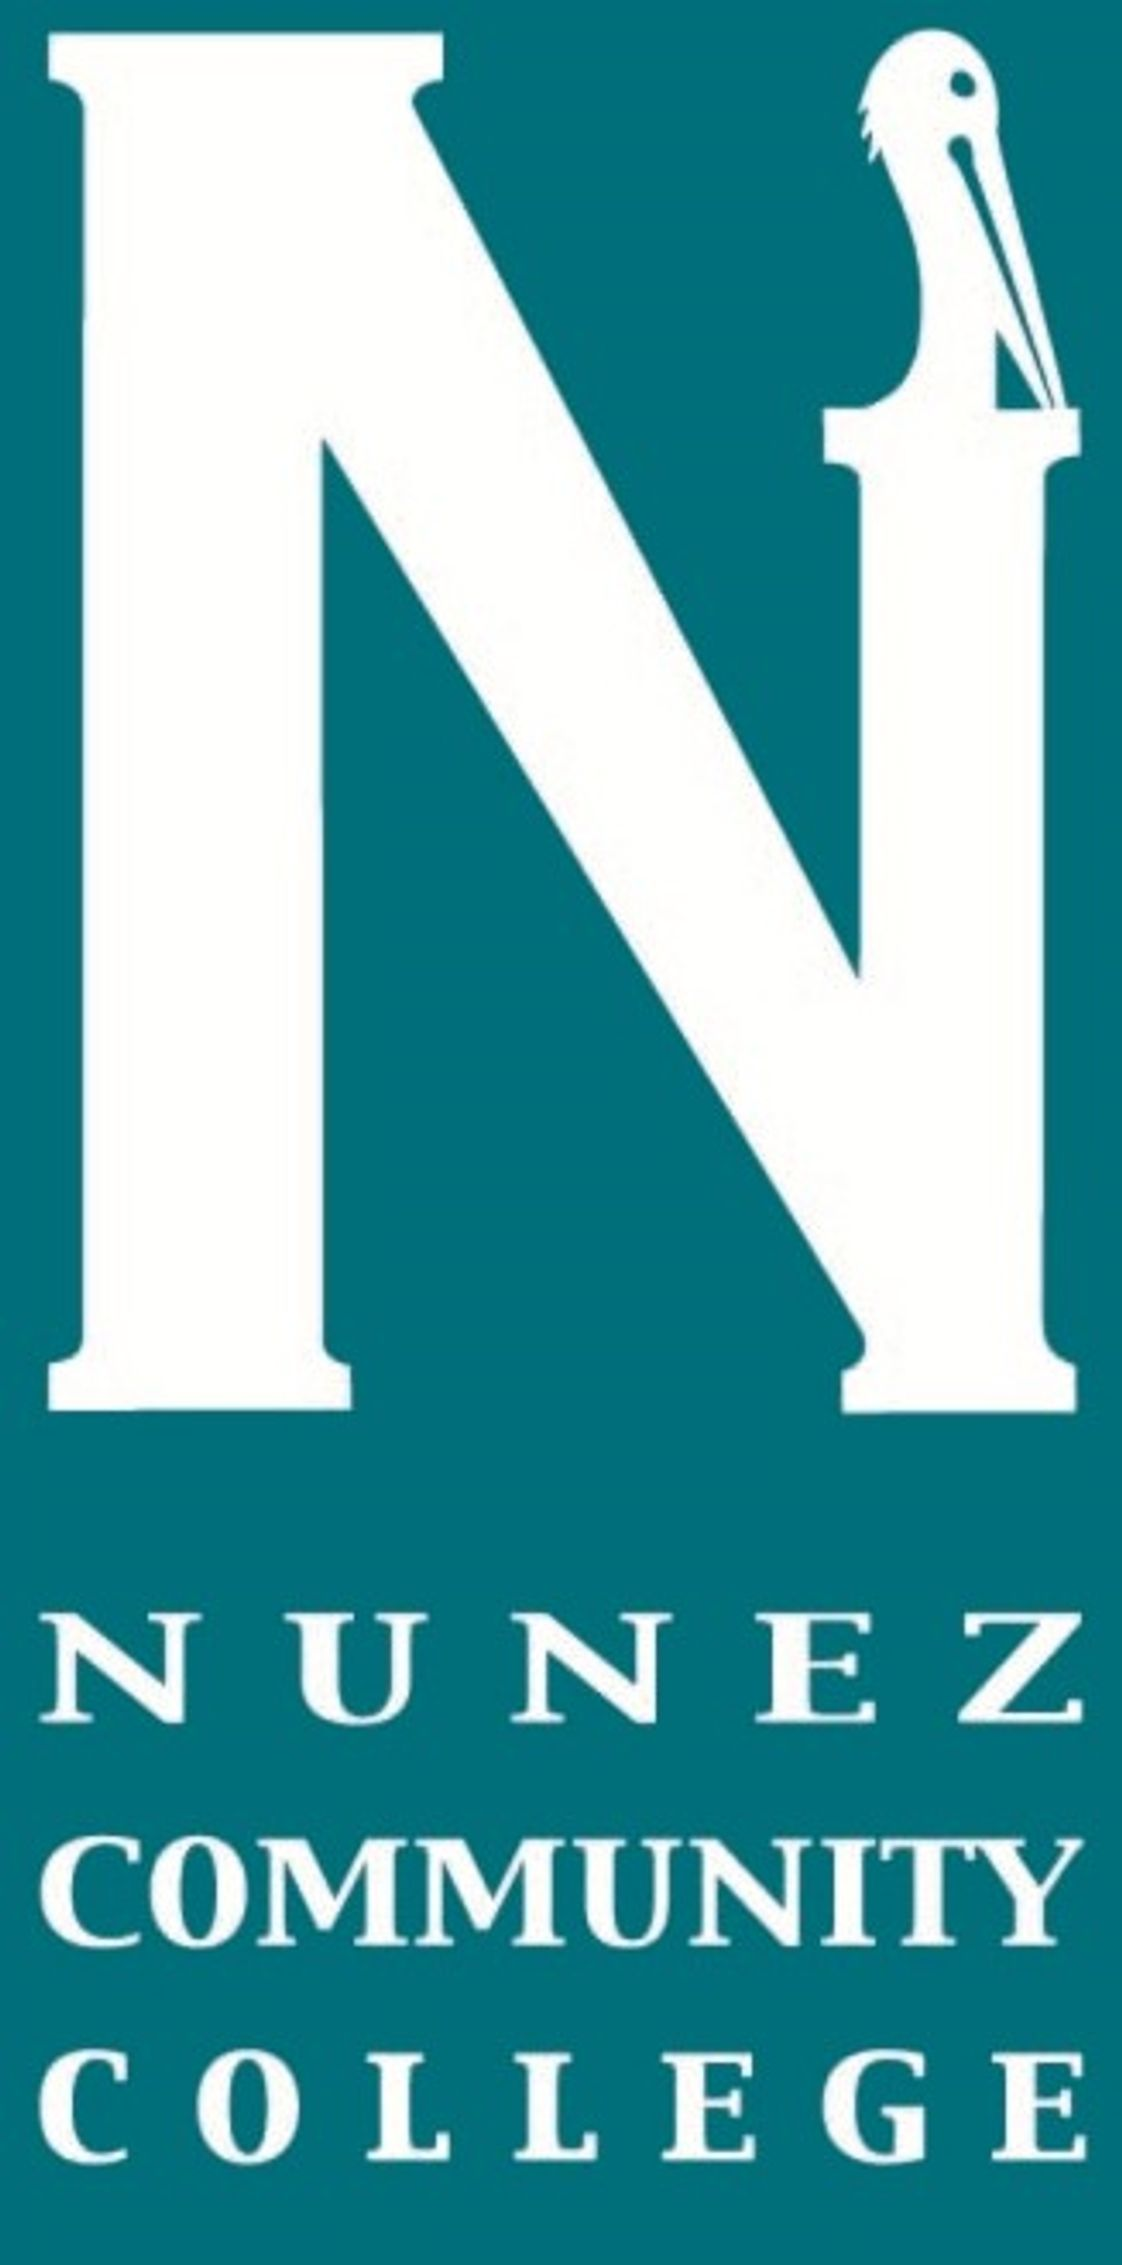 Nunez Community College Photo #1 - Nunez Community College logo.